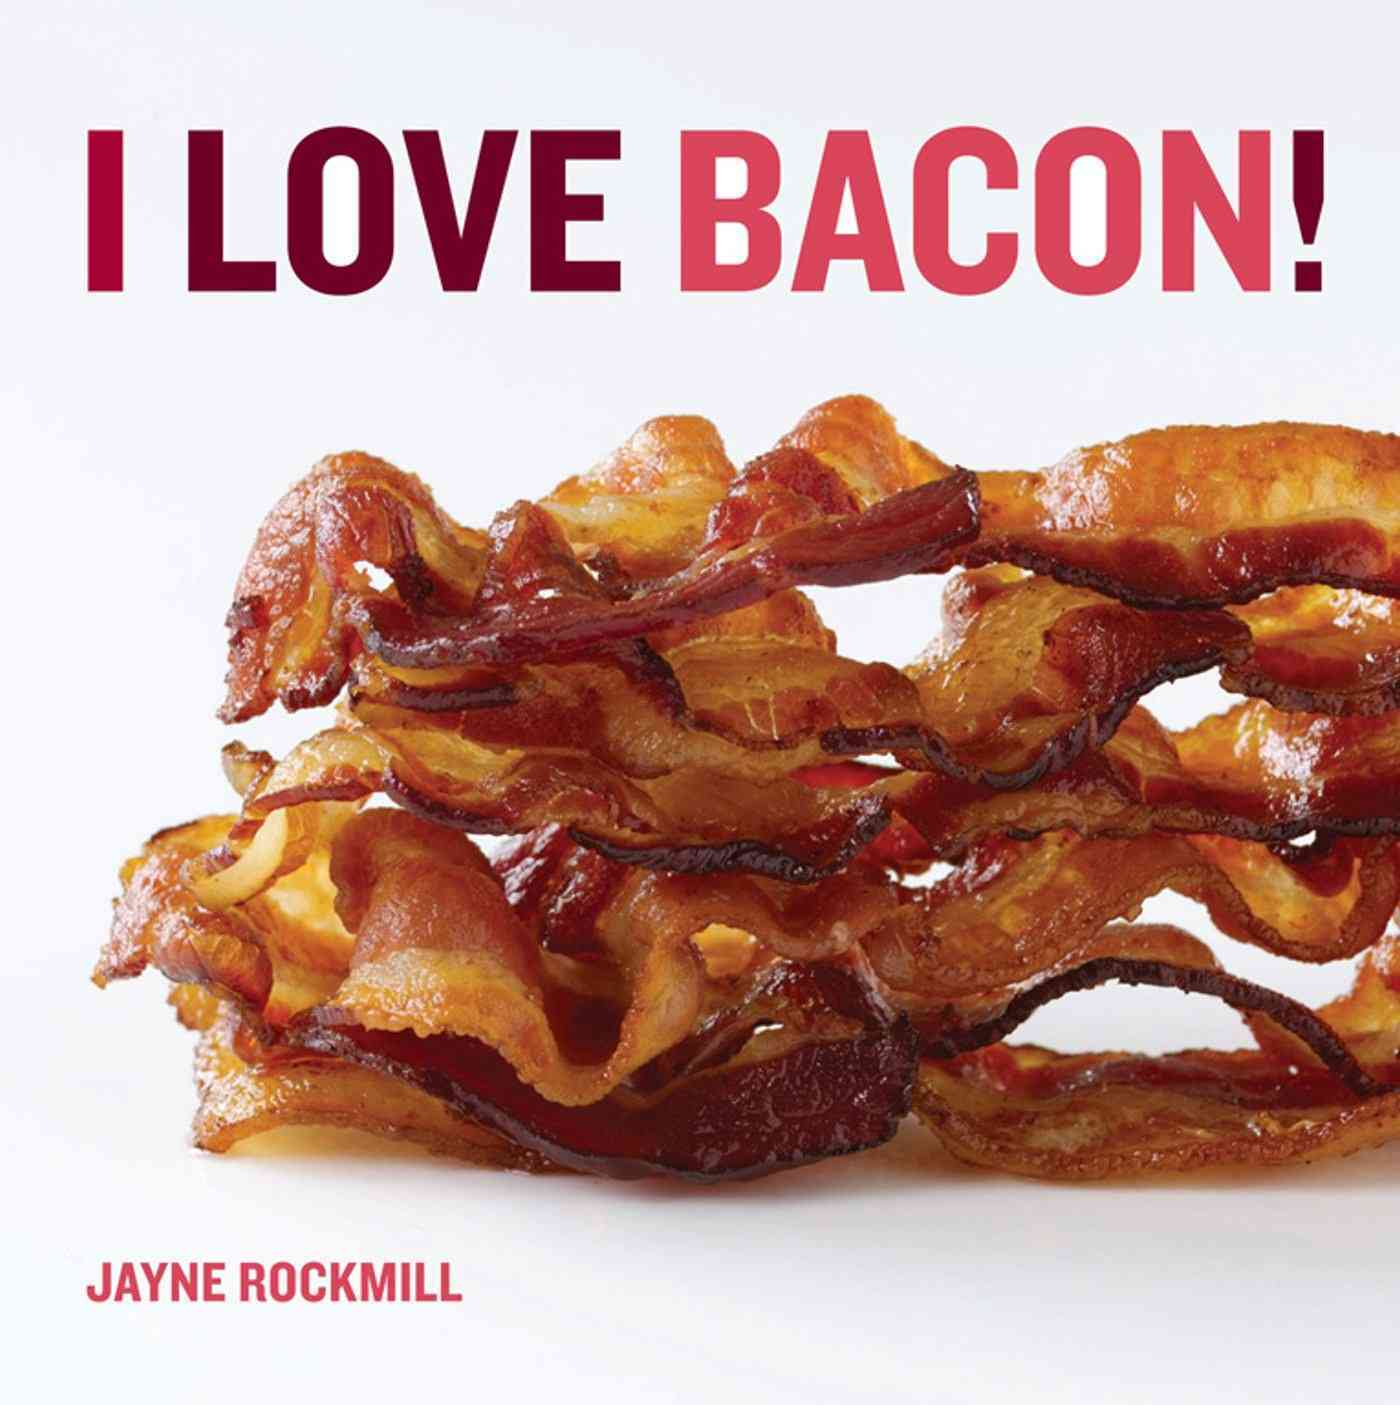 I Love Bacon! (Hardcover)